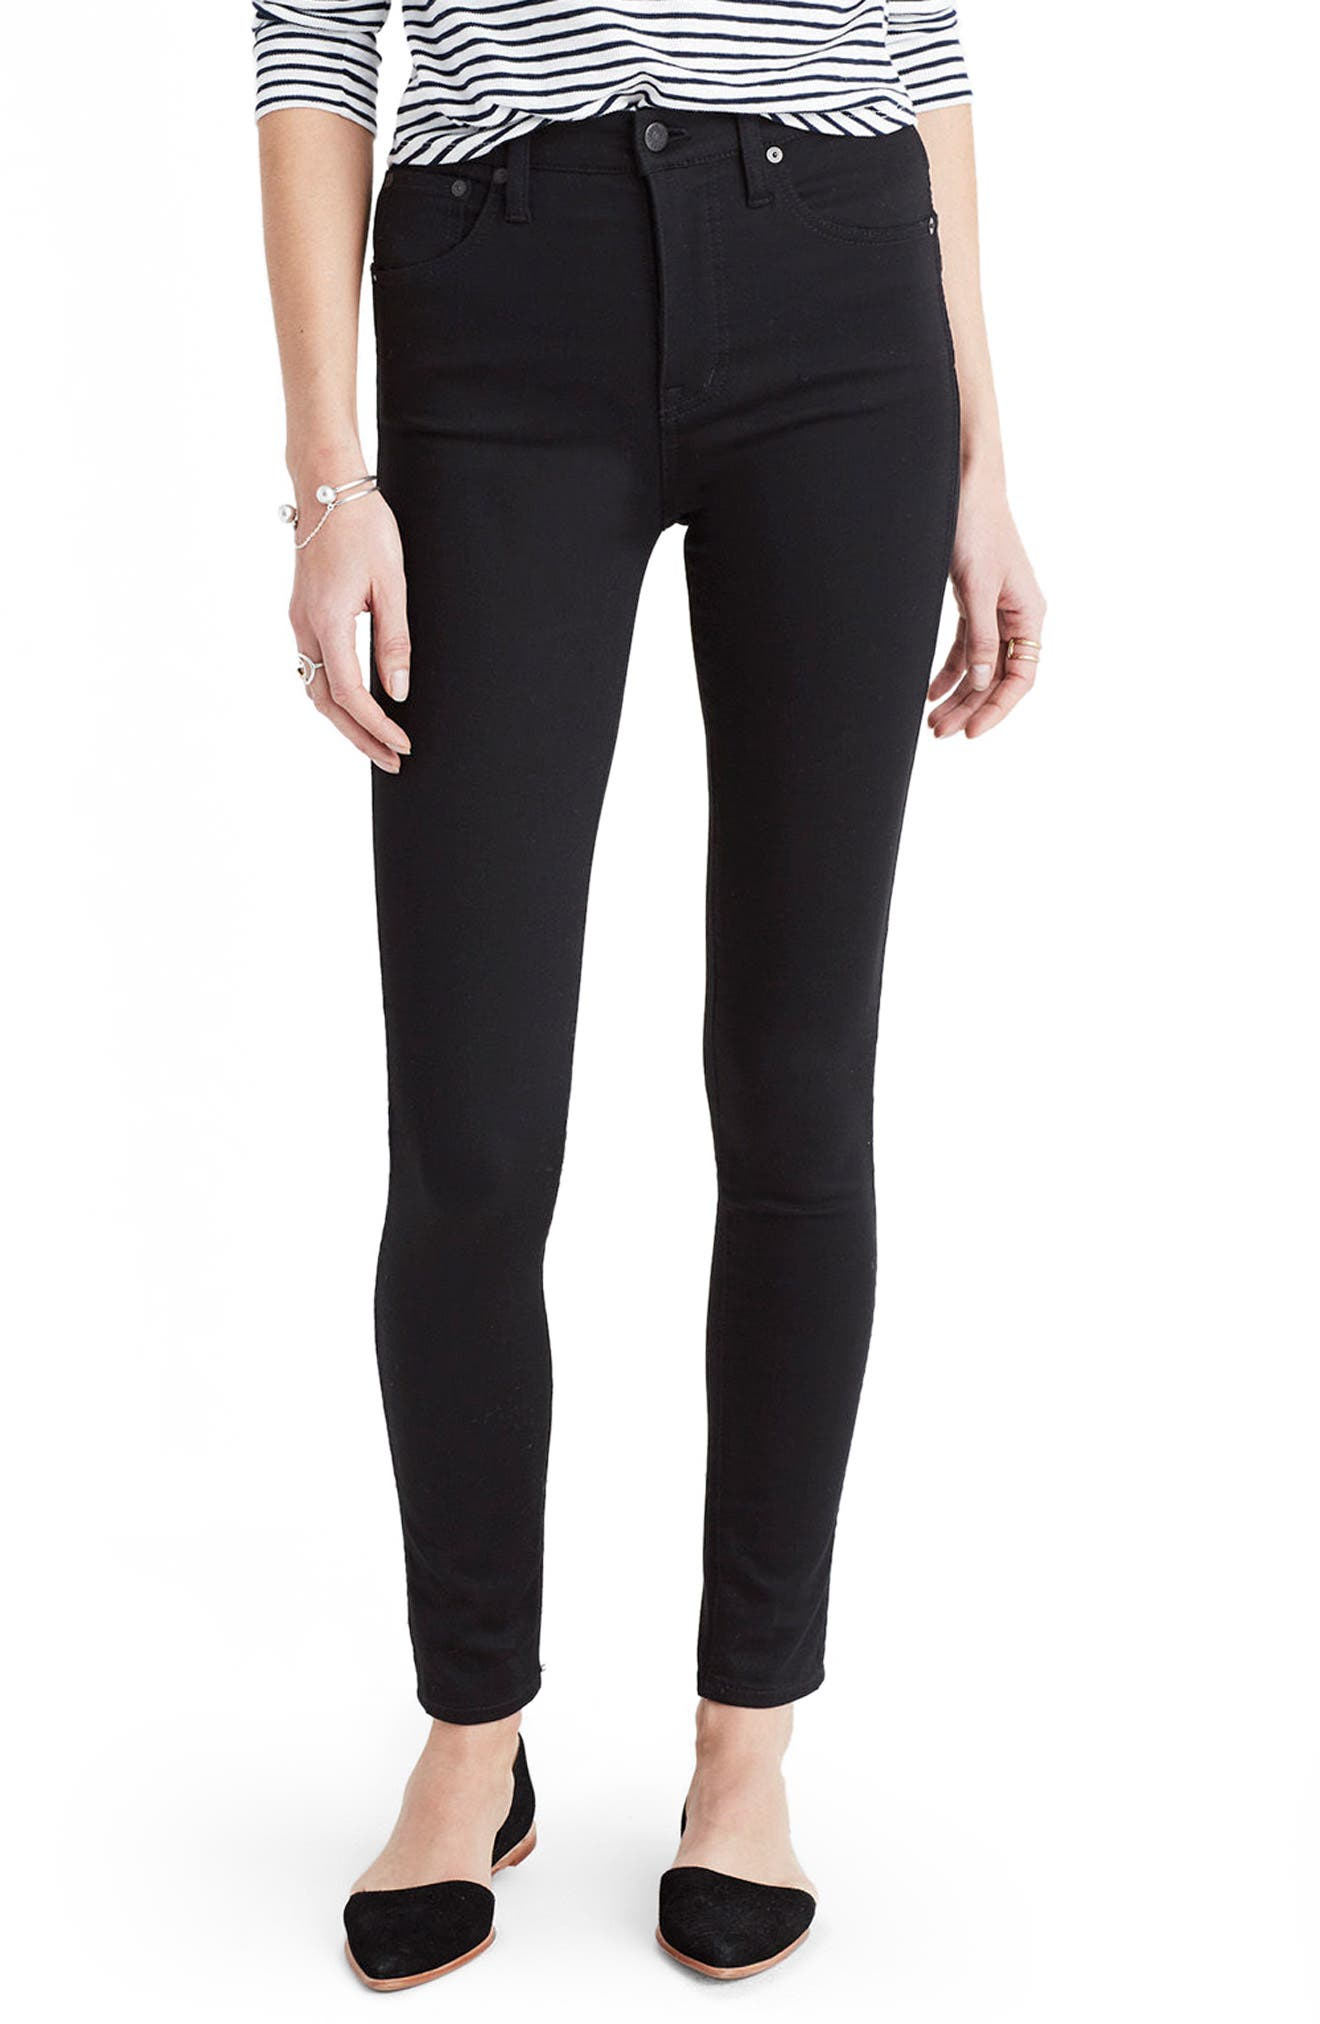 Madewell 10-Inch High-Rise Skinny Jeans (Carbondale)